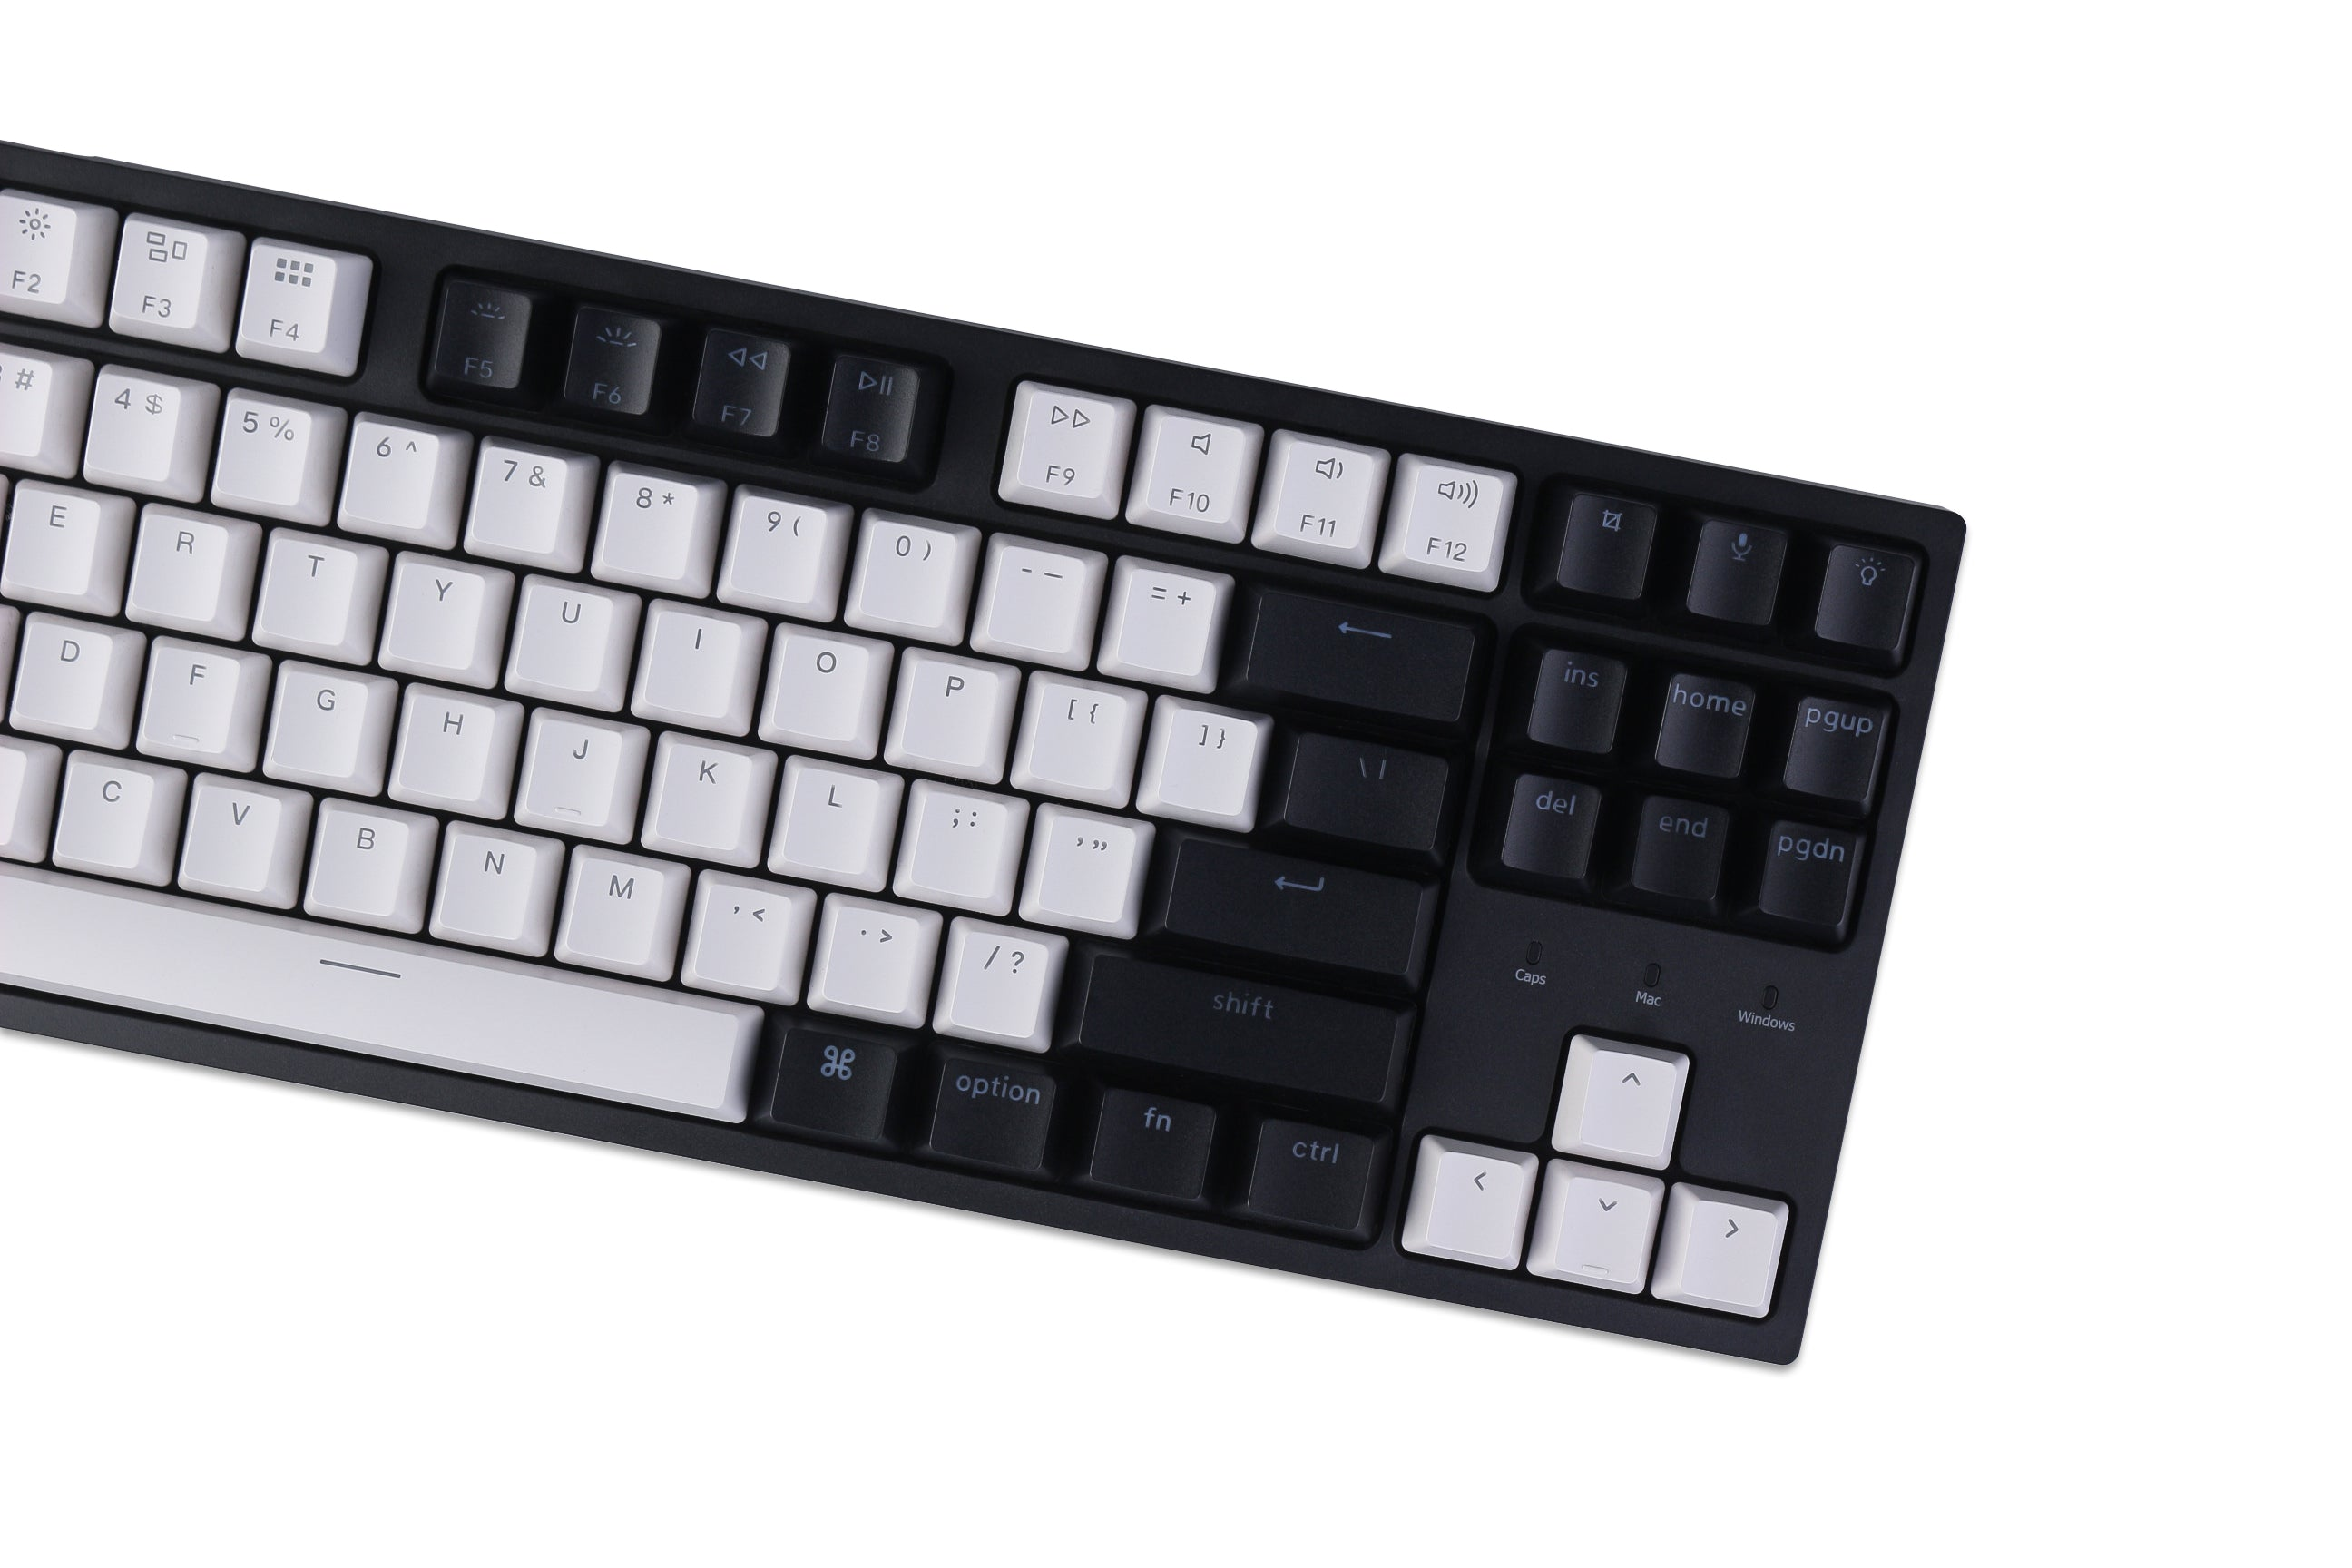 Keychron C1 hot-swappable wired type-c mechanical keyboard tenkeyless layout for Mac Windows iOS Gateron switch red blue brown RGB backlight